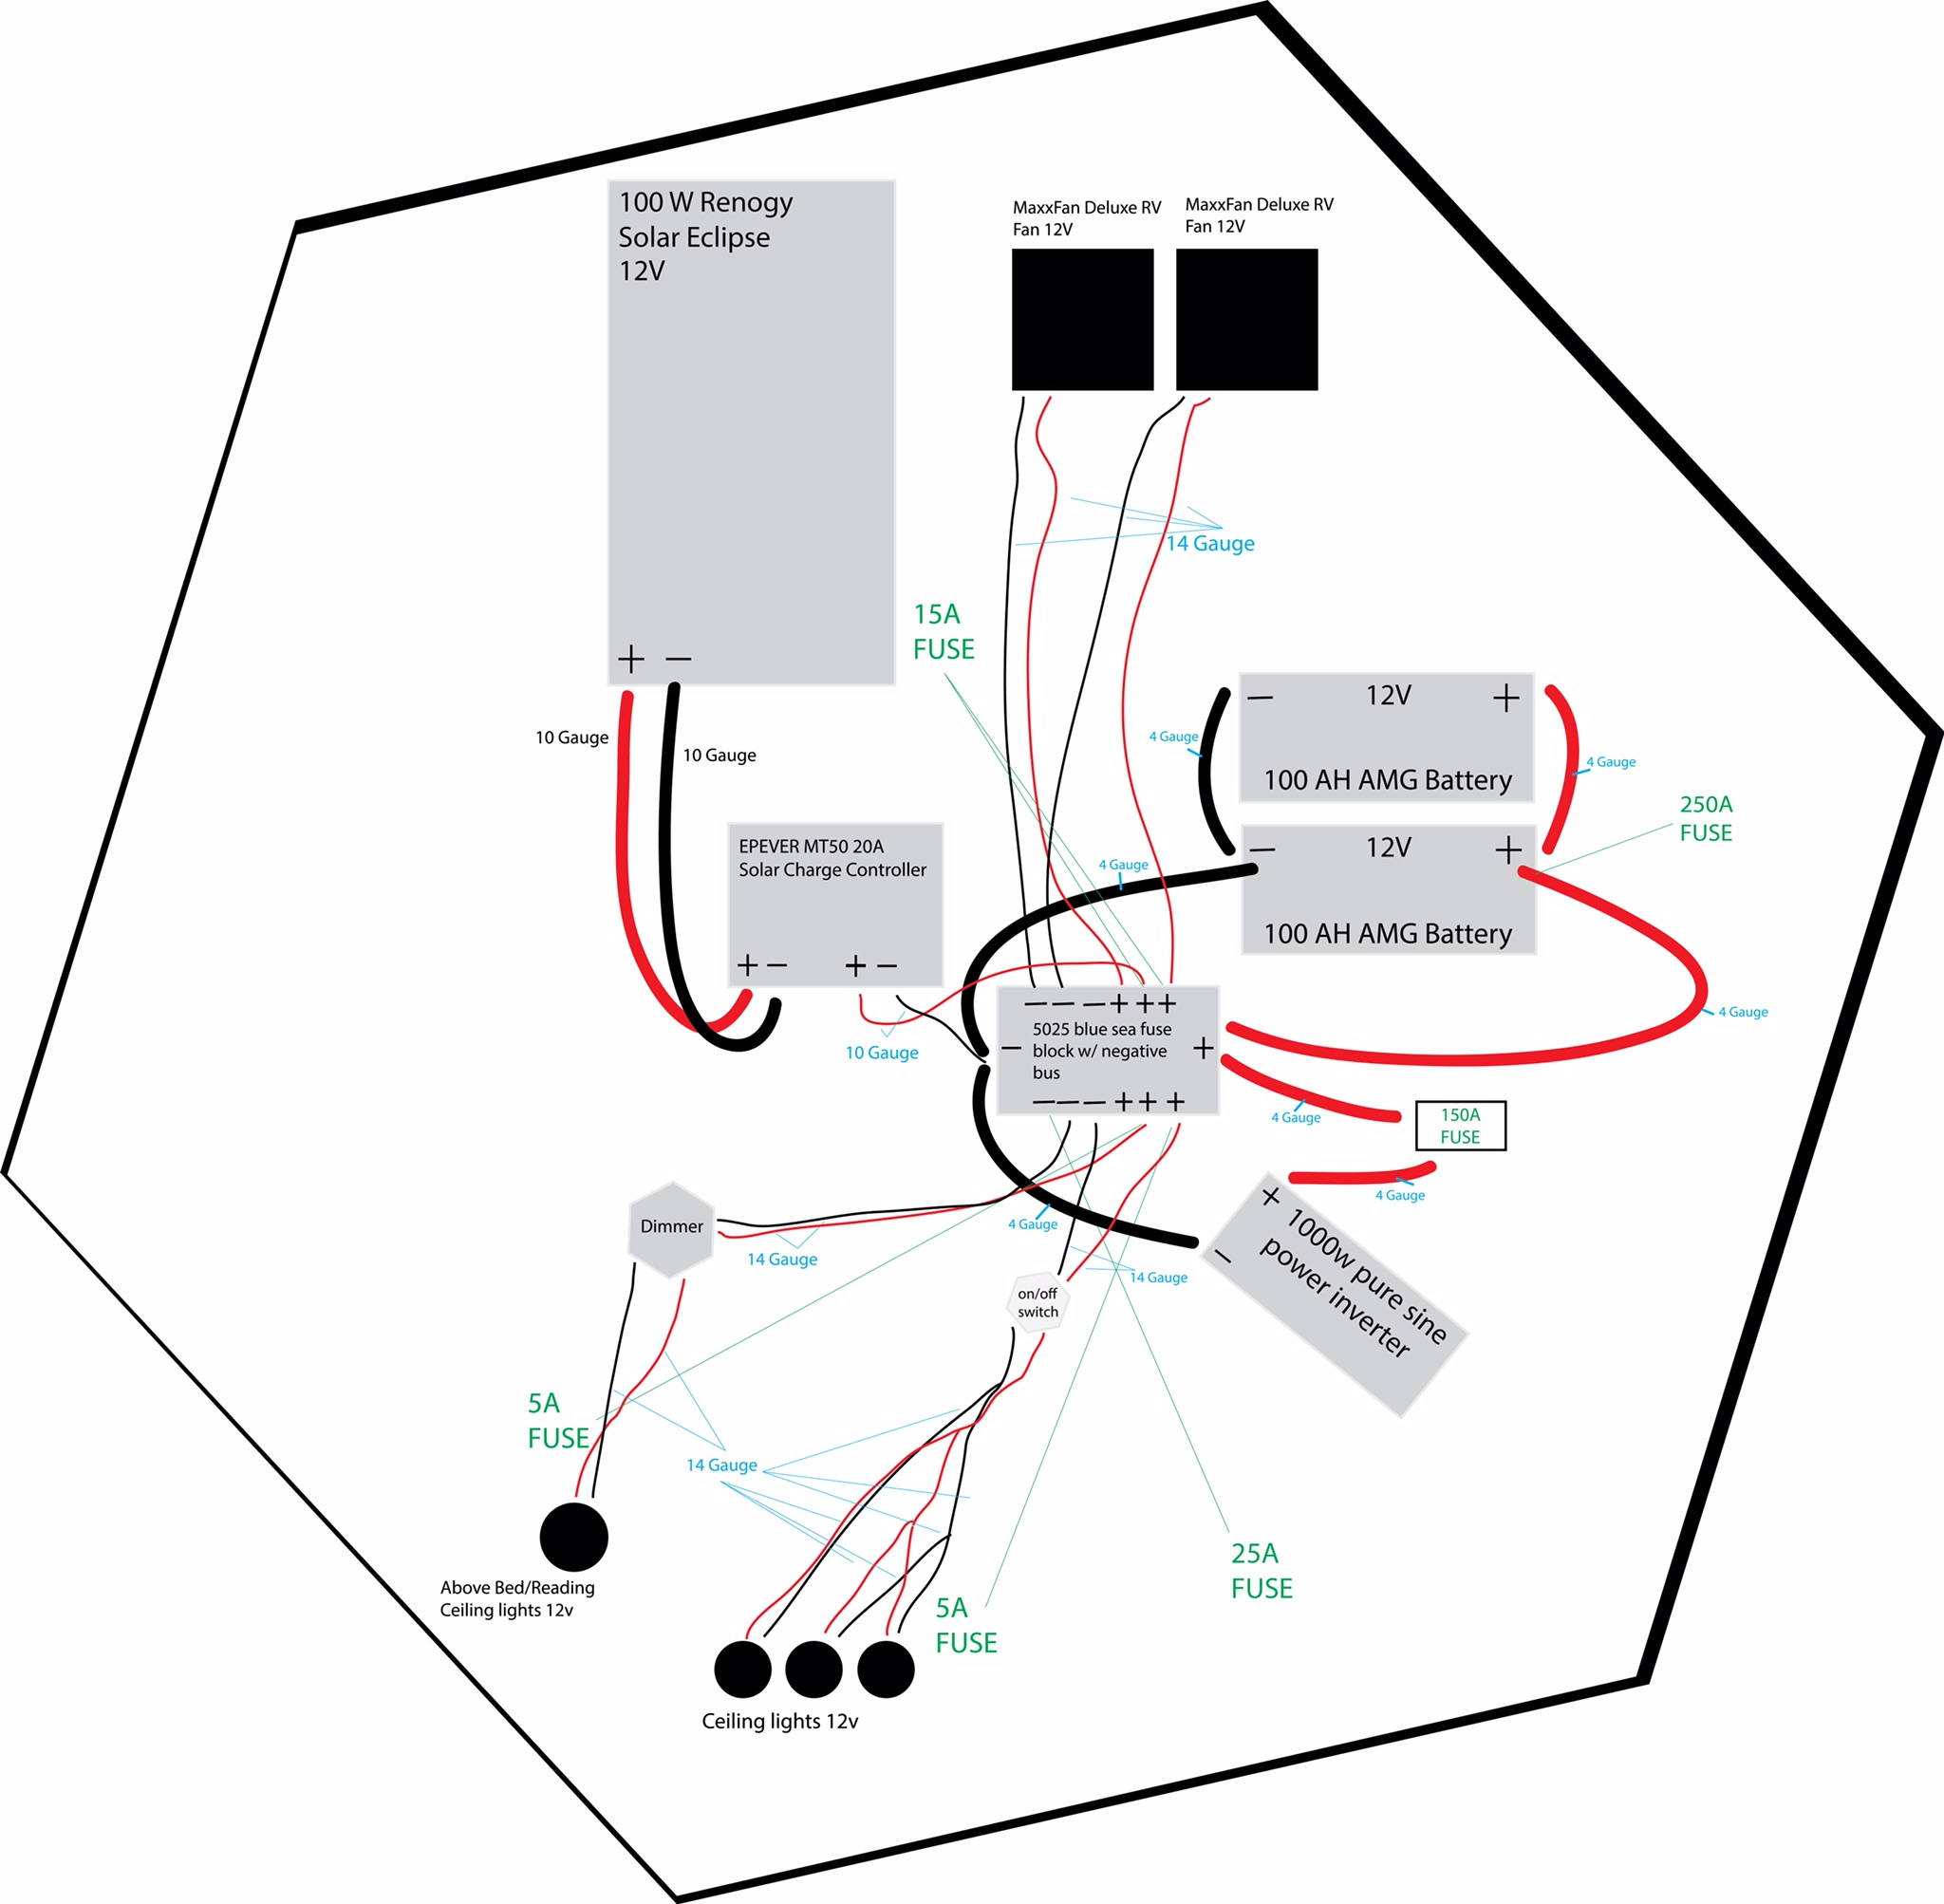 [WQZT_9871]  Wiring diagram review — northernarizona-windandsun | Wiring Diagram Review |  | forum.solar-electric.com